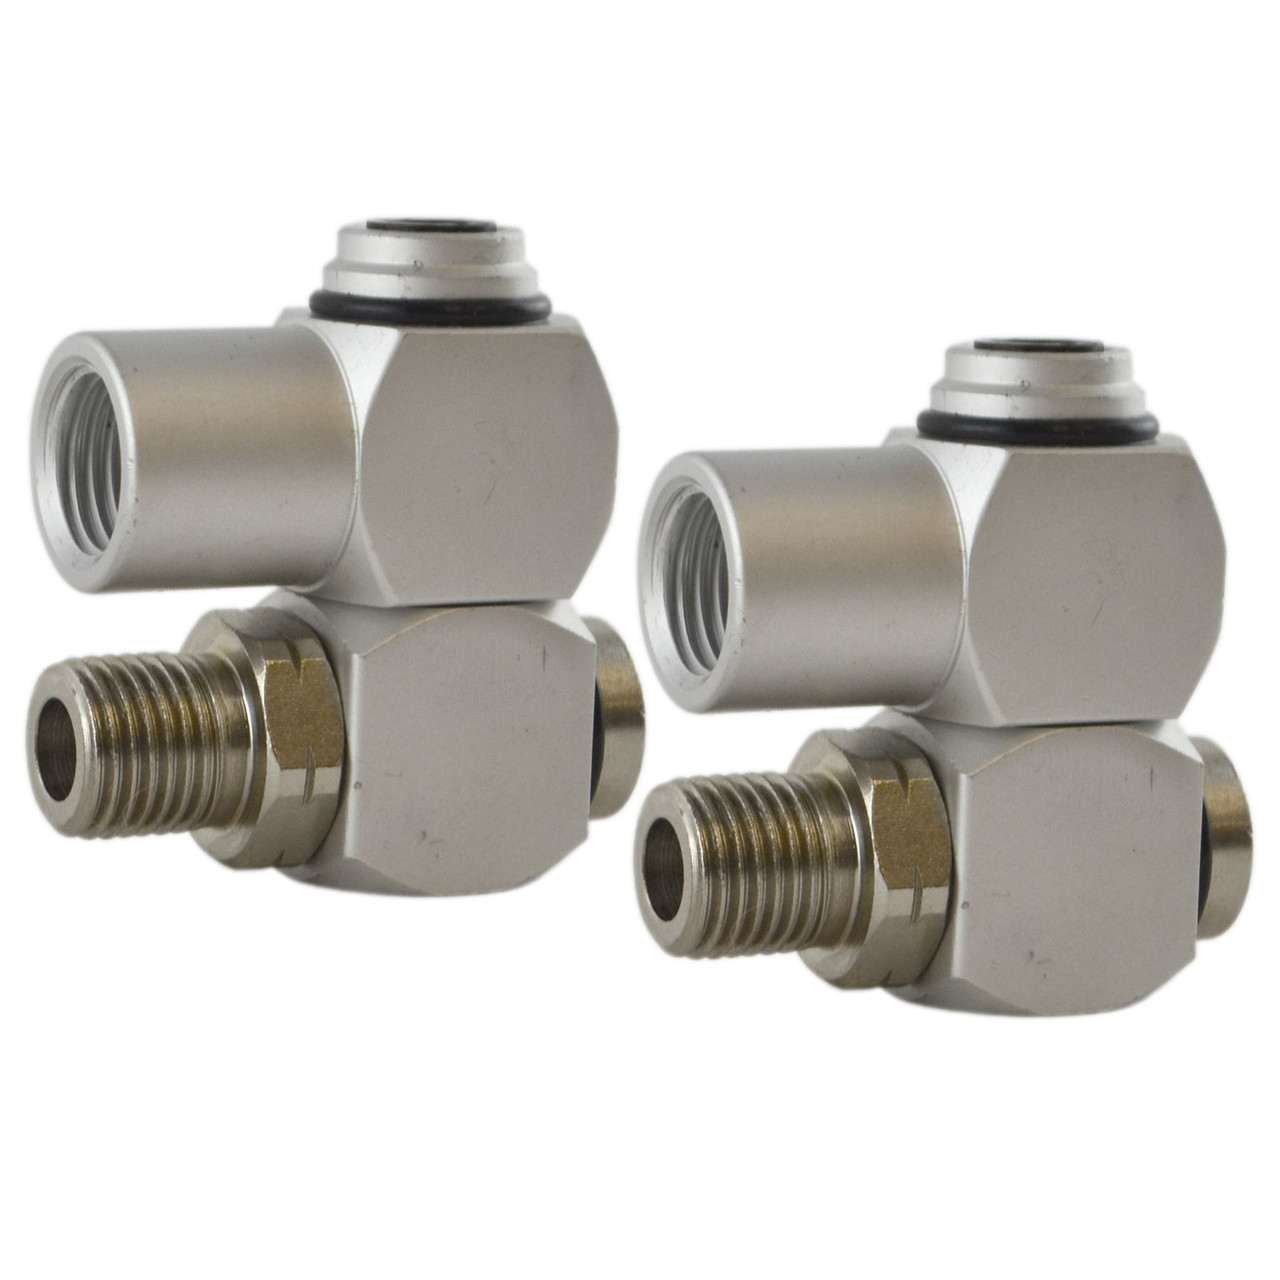 """1//4"""" BSP Male Female Air Compressor Fitting Connector 360 Degree Swivel 2pc"""